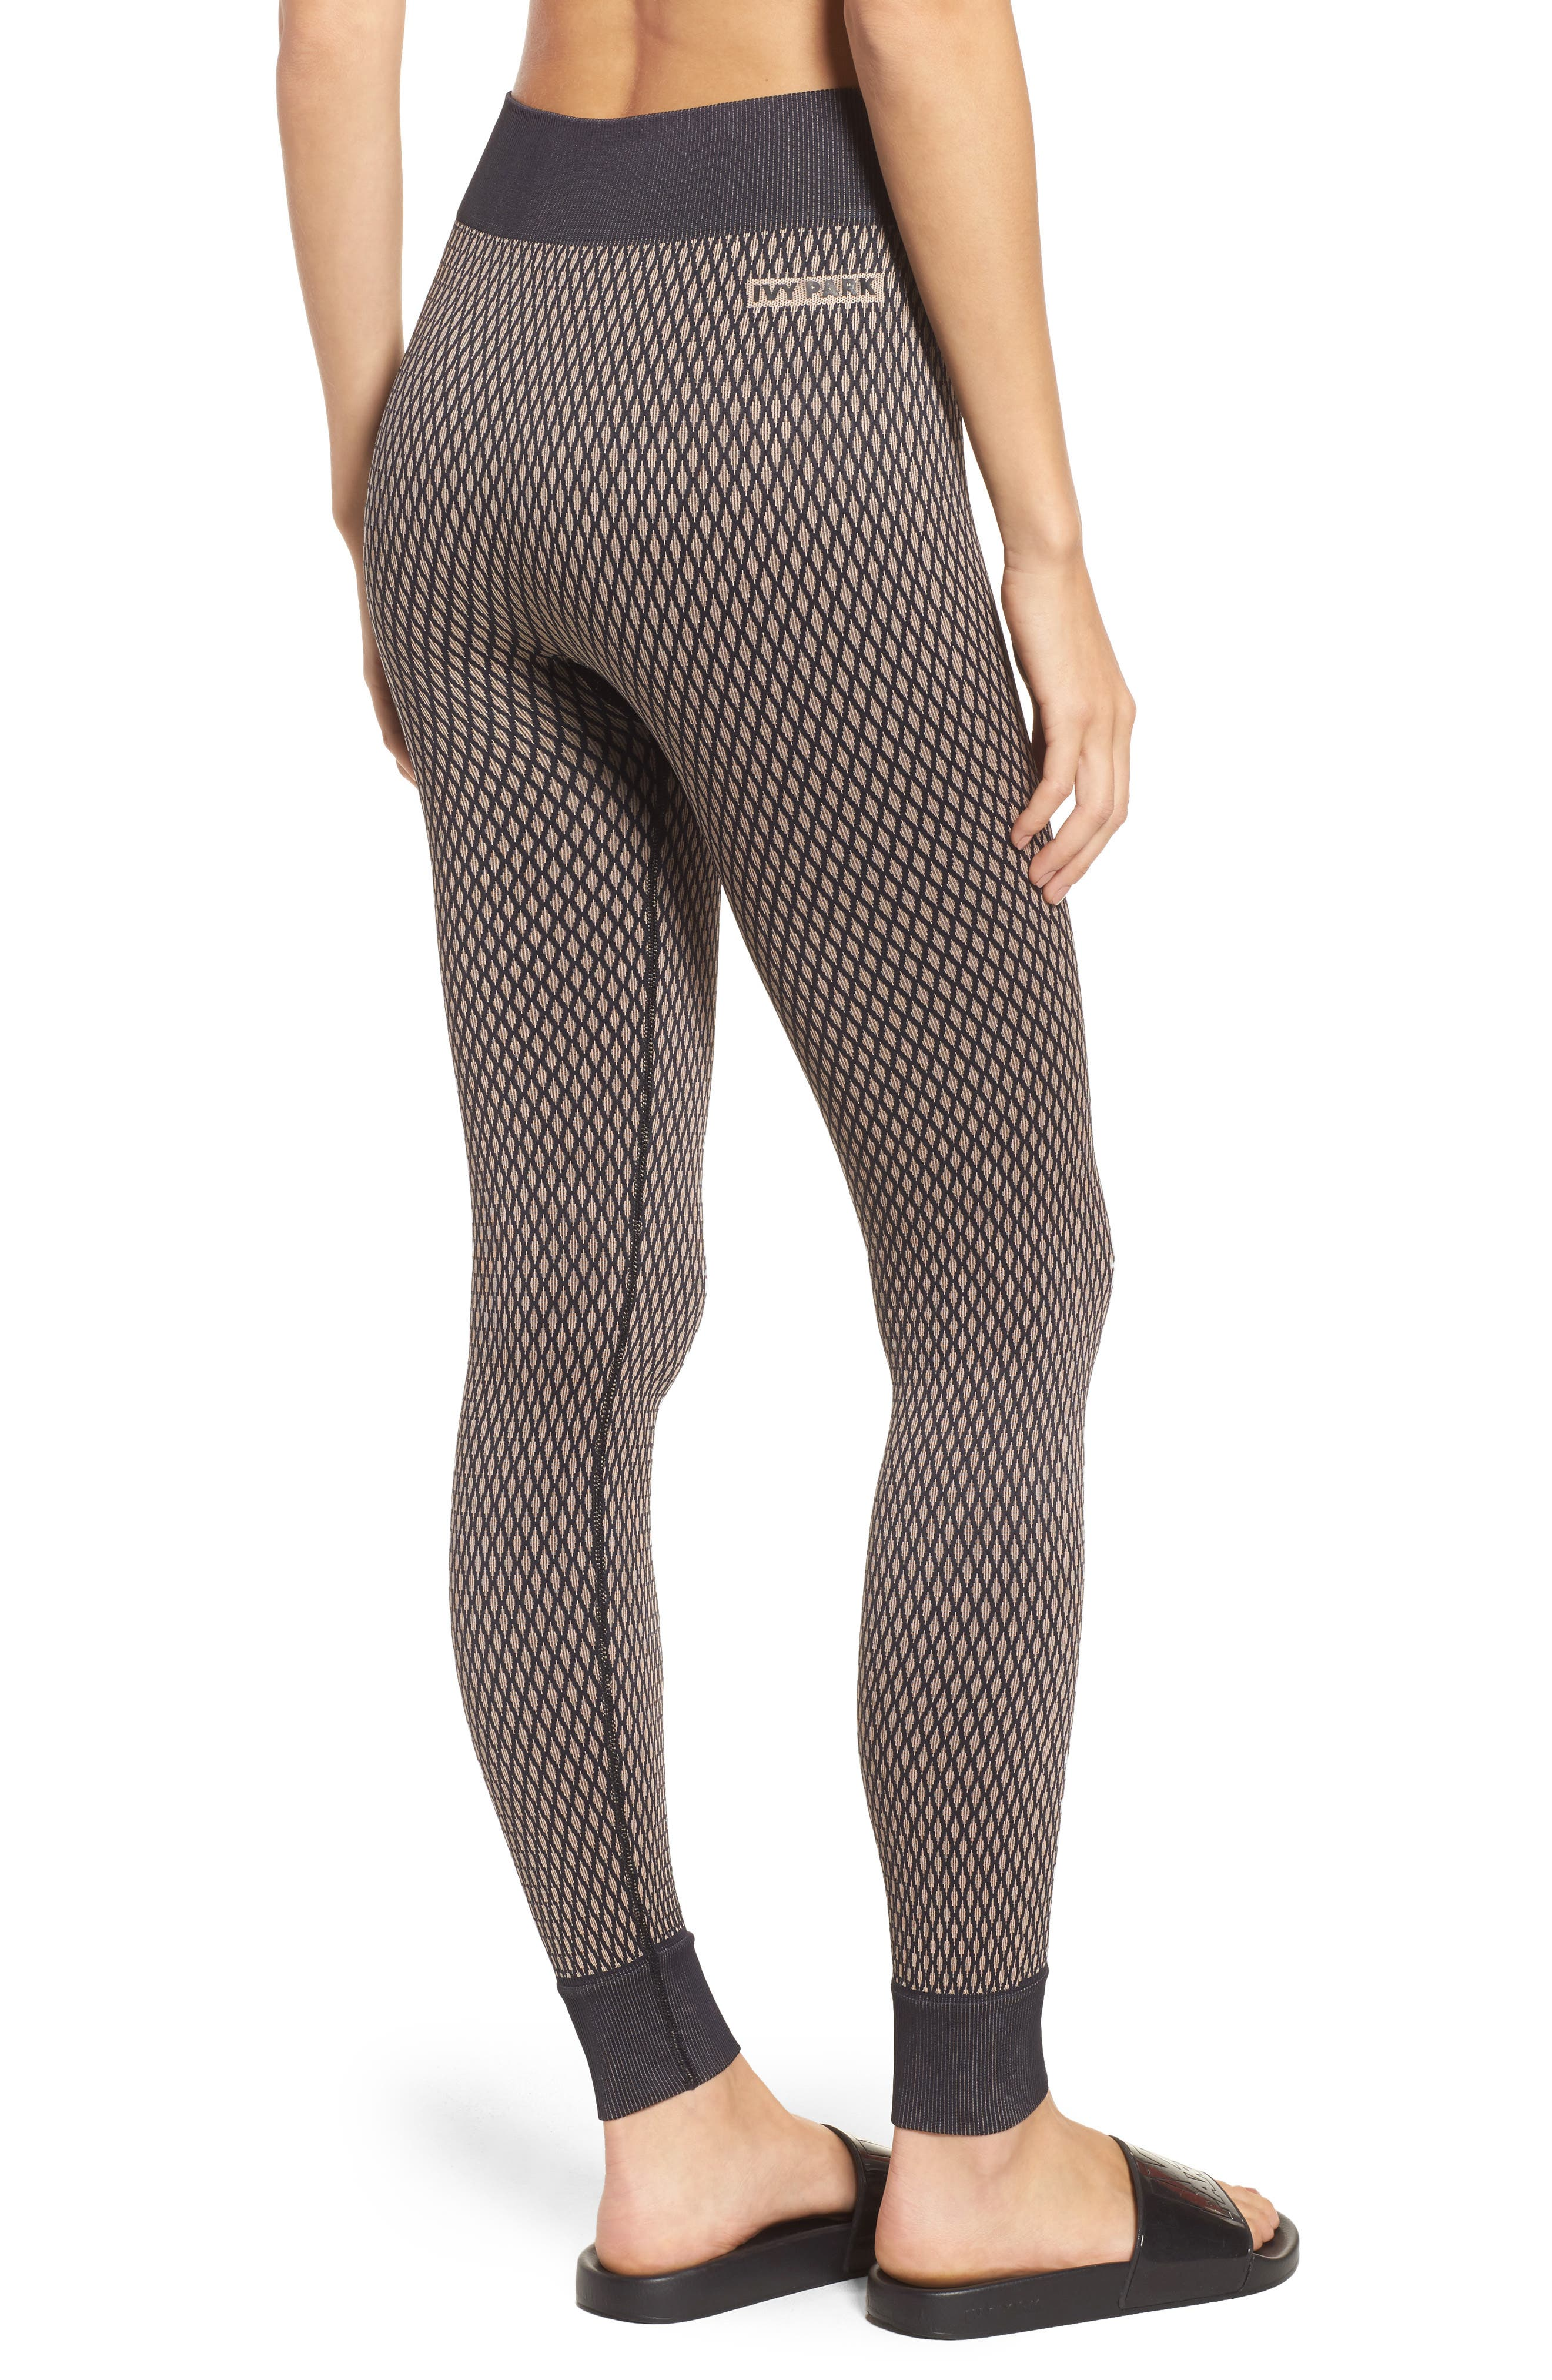 Alternate Image 2  - IVY PARK® Fishnet Seamless Leggings